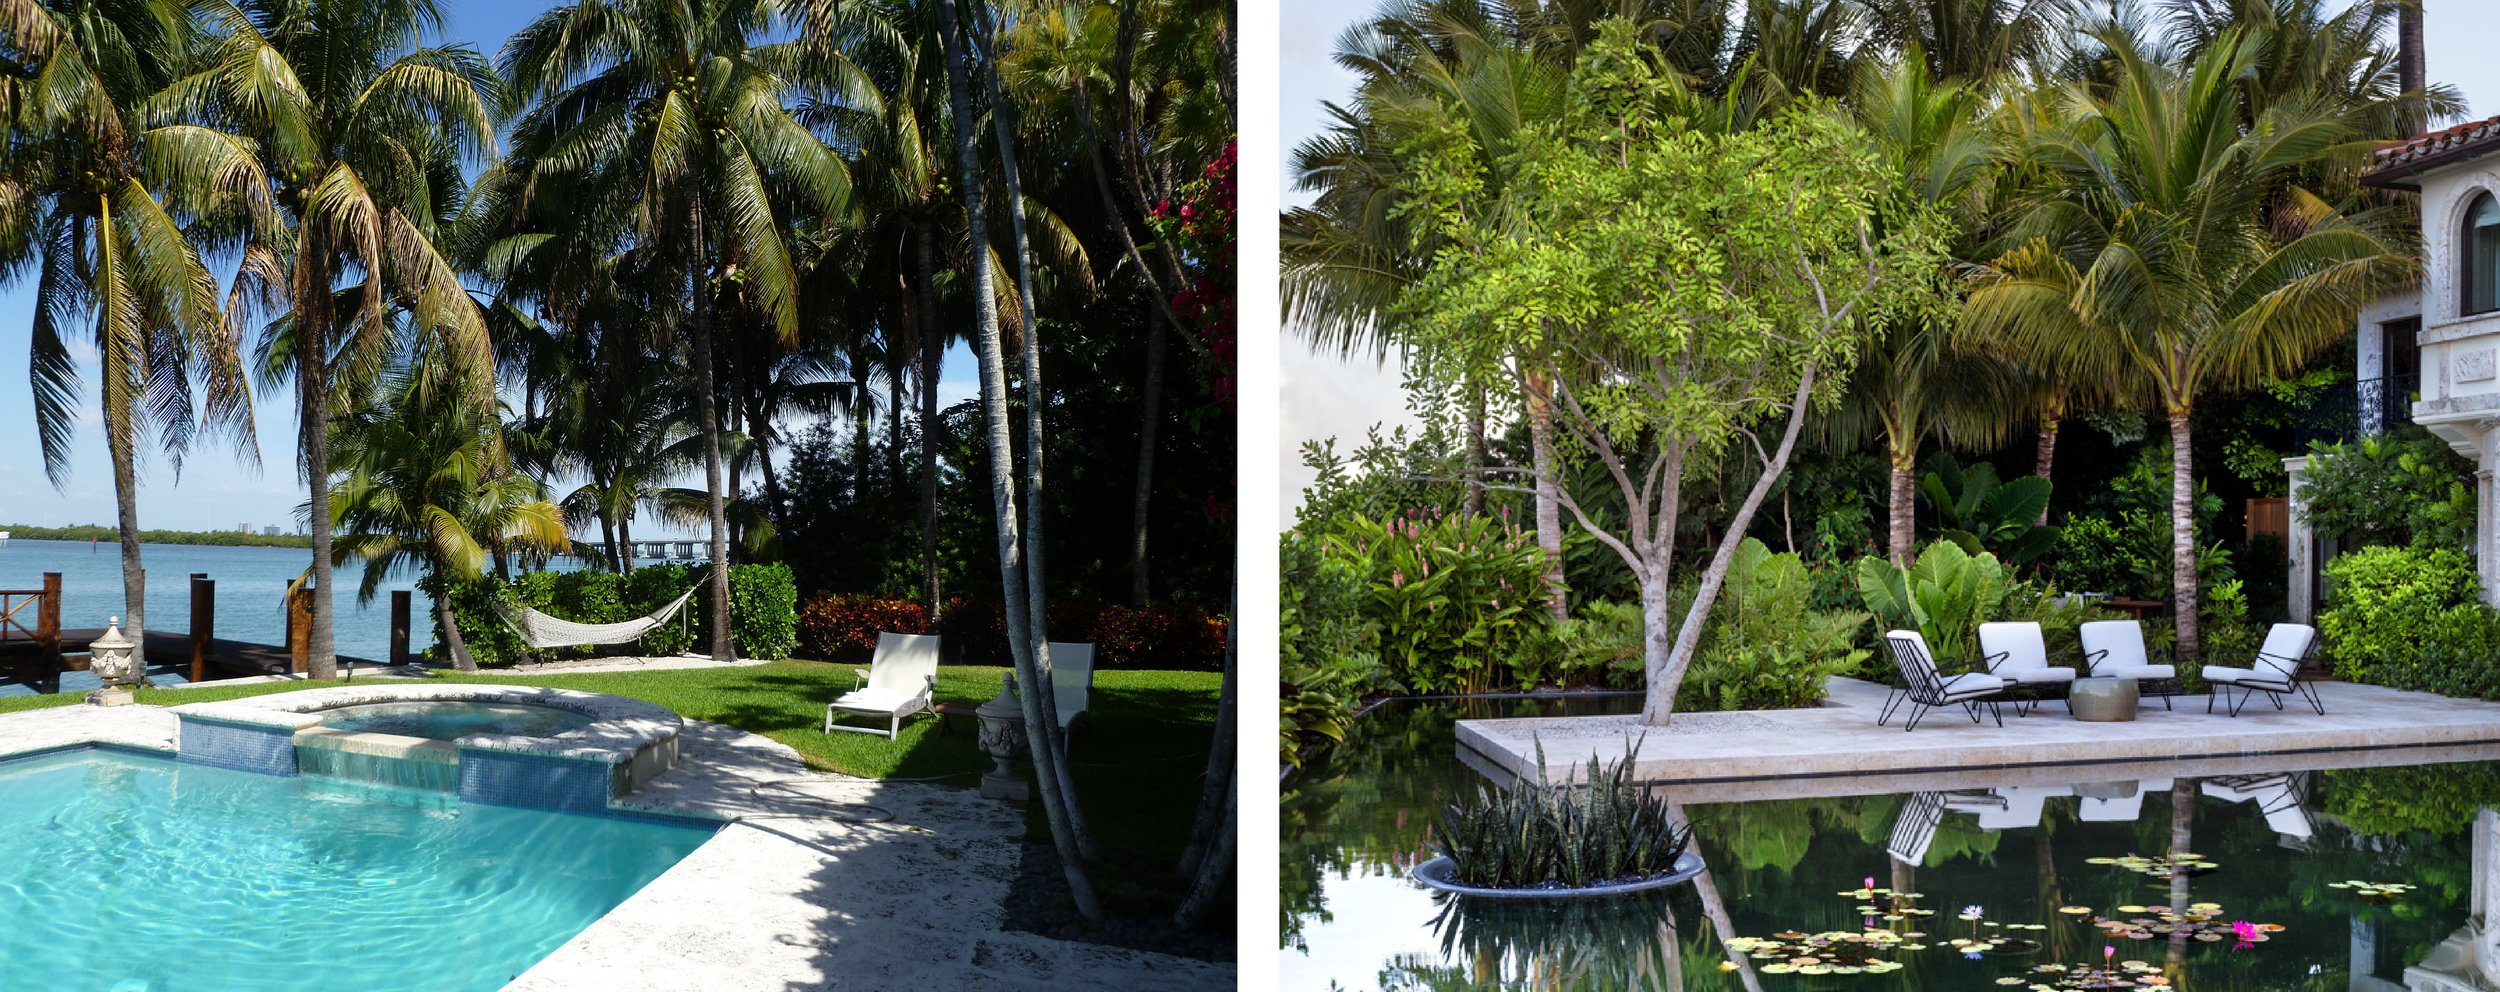 MIAMI BEFORE / AFTER